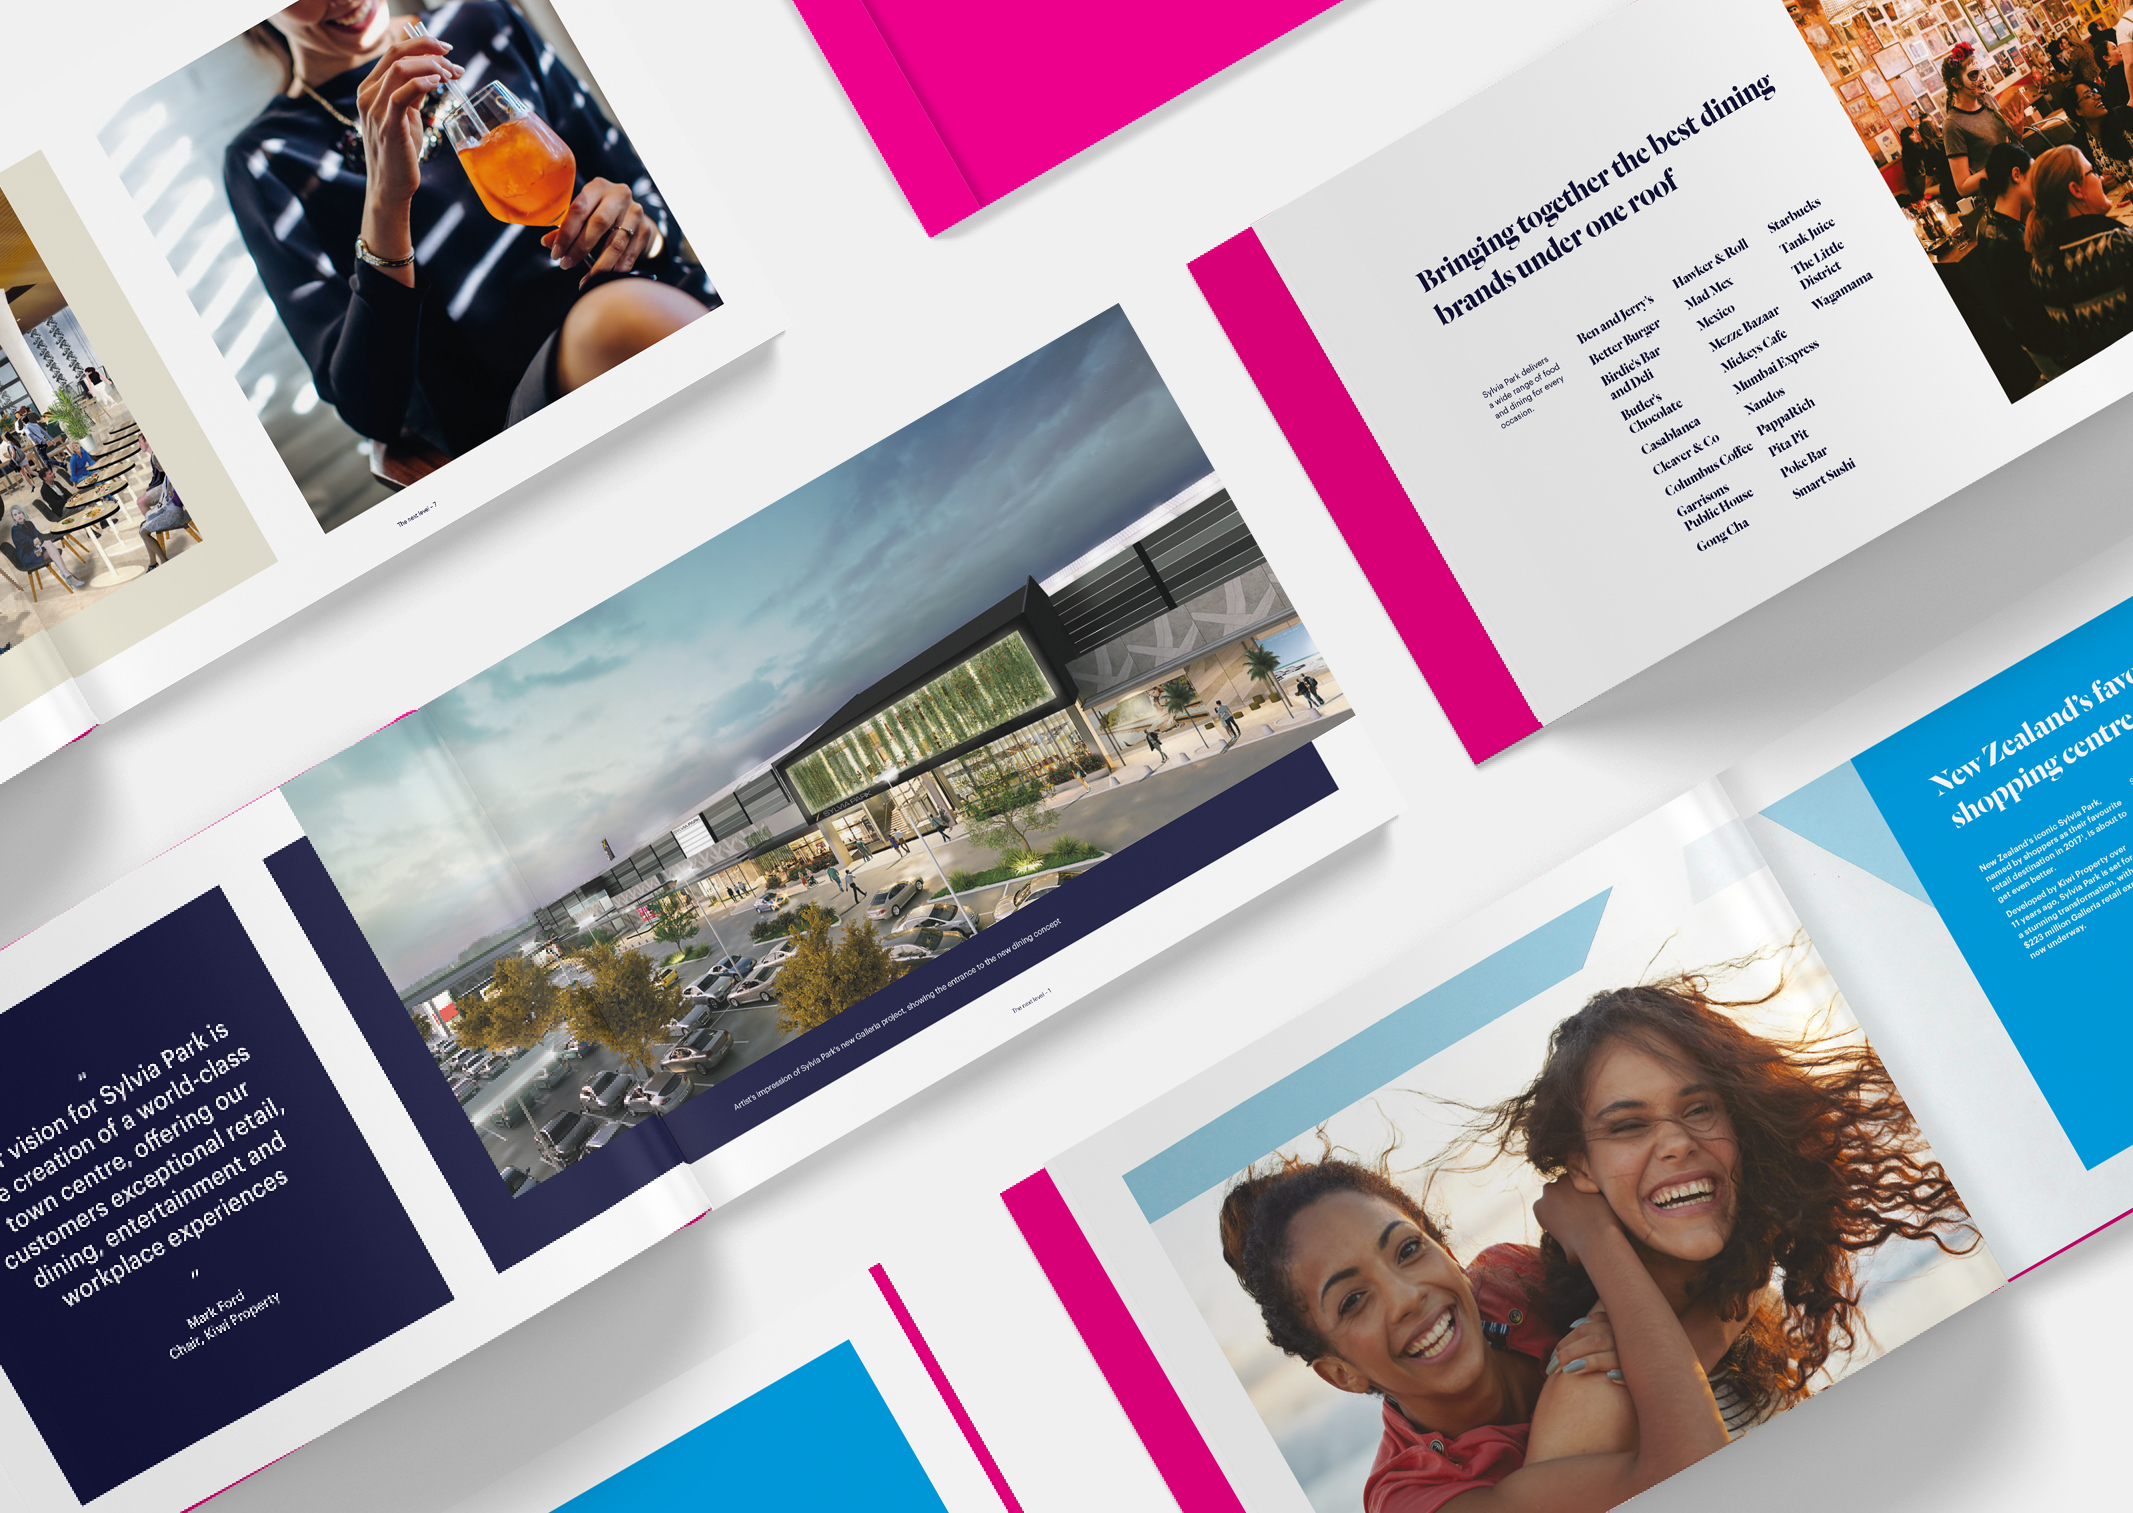 Multiple spreads of Sylvia Park Leasing Brochure showing dramatic imagery